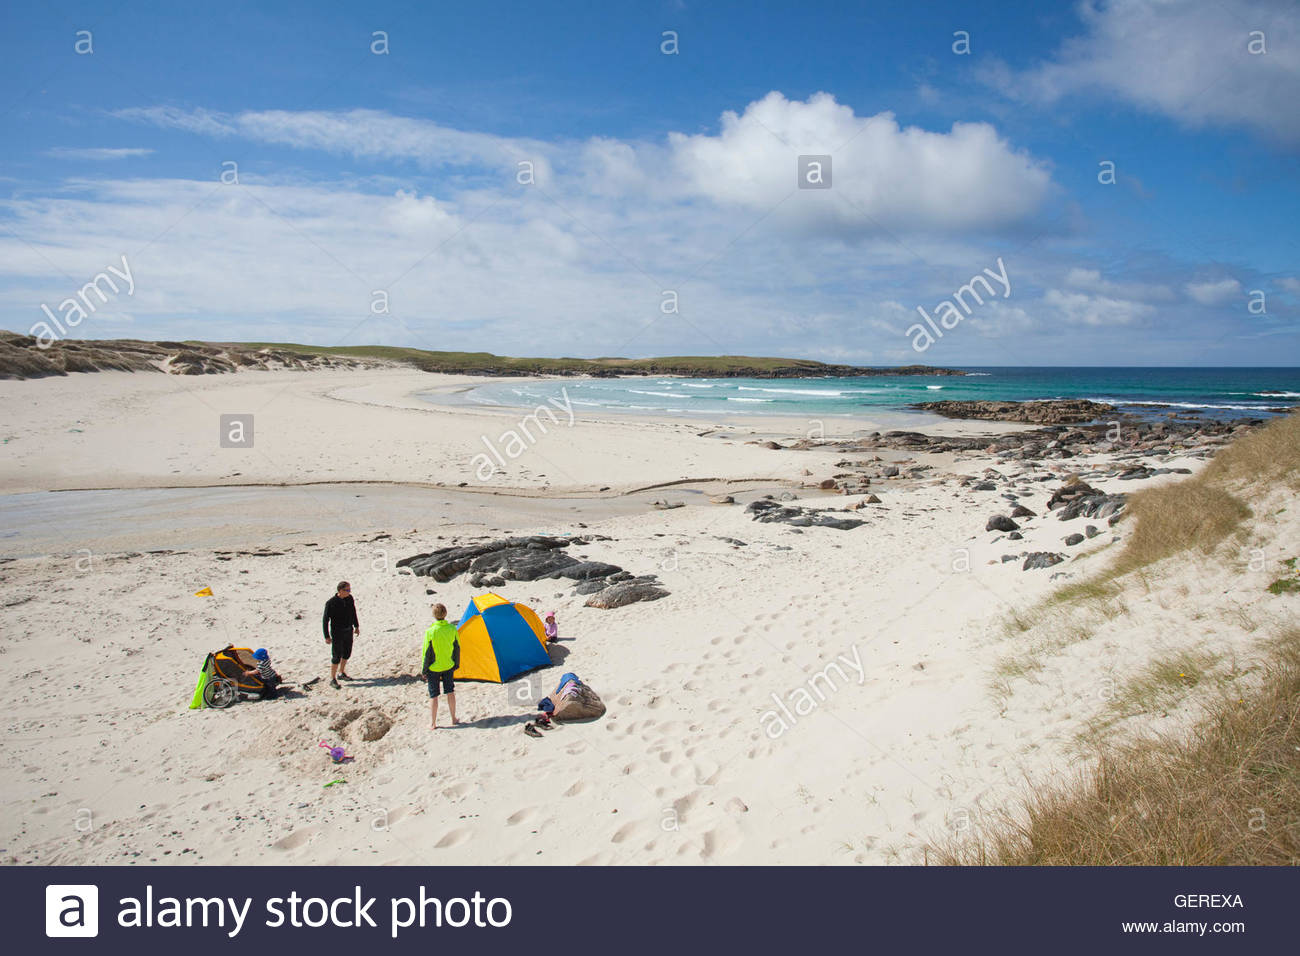 A family enjoy a day on Hosta Beach or Traigh Stir, North Uist, Outer Hebrides, Scotland. - Stock Image